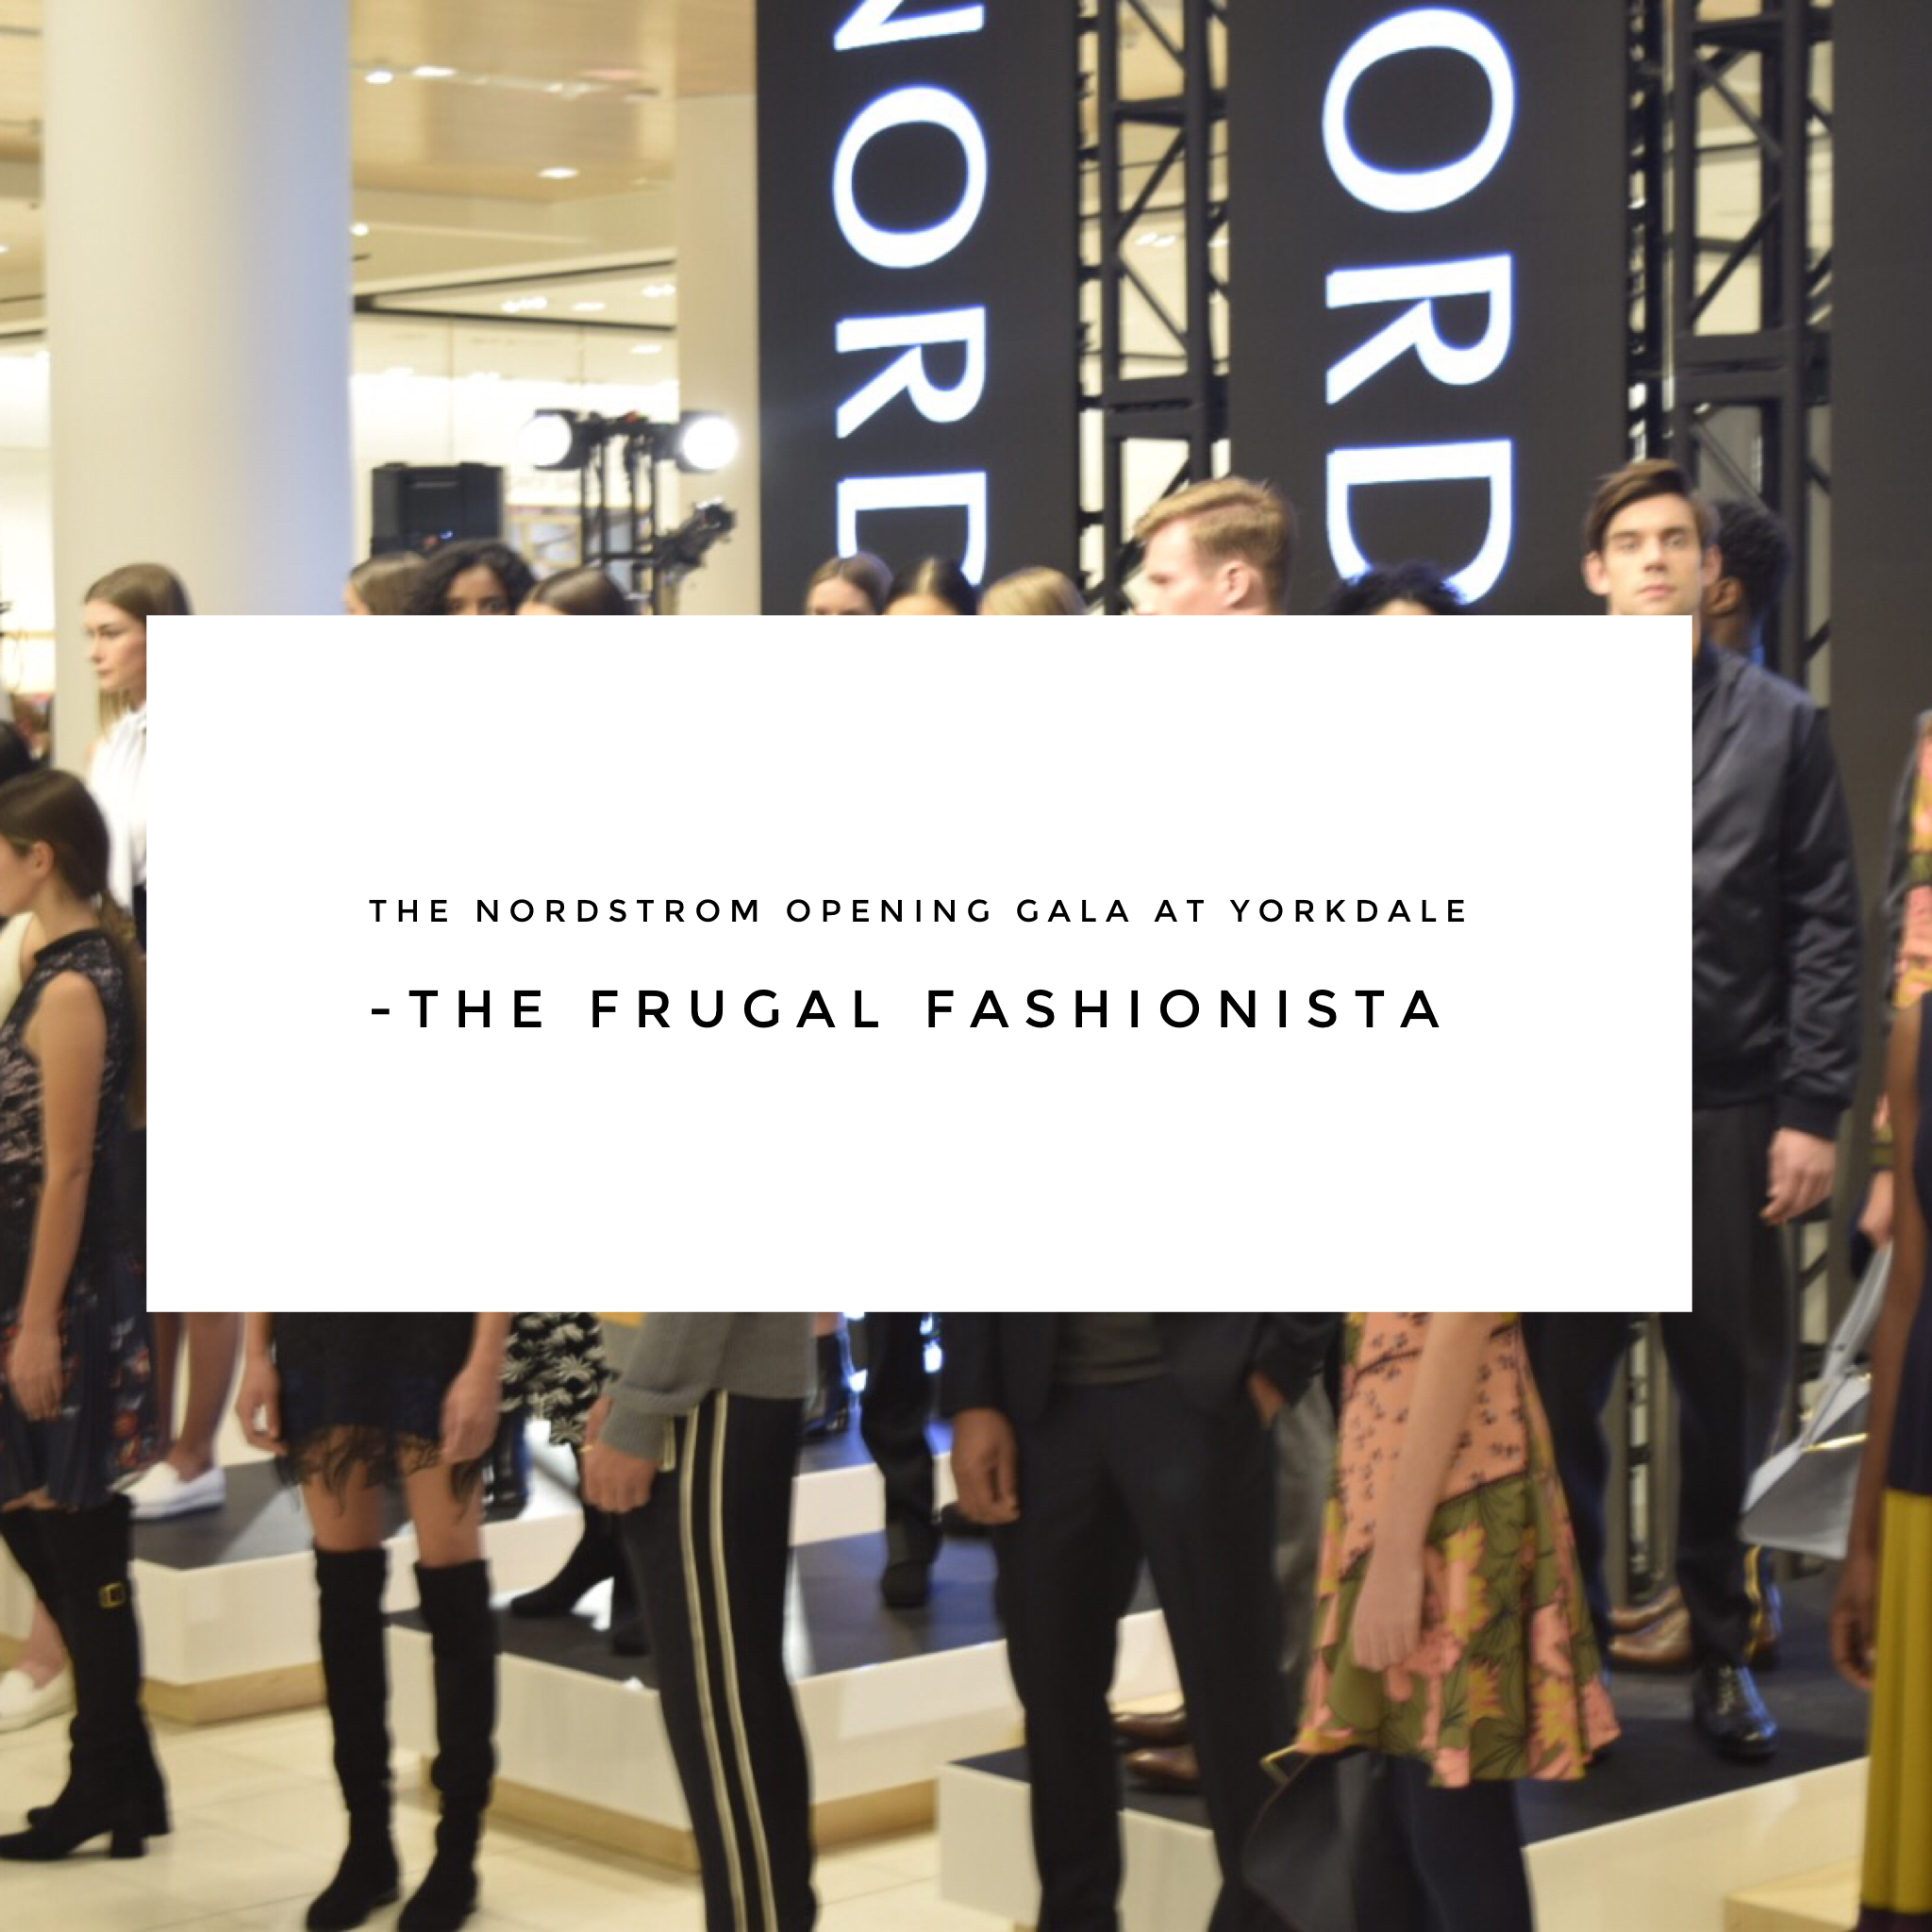 The Frugal Fashionista: The Nordstrom Opening Gala at Yorkdale